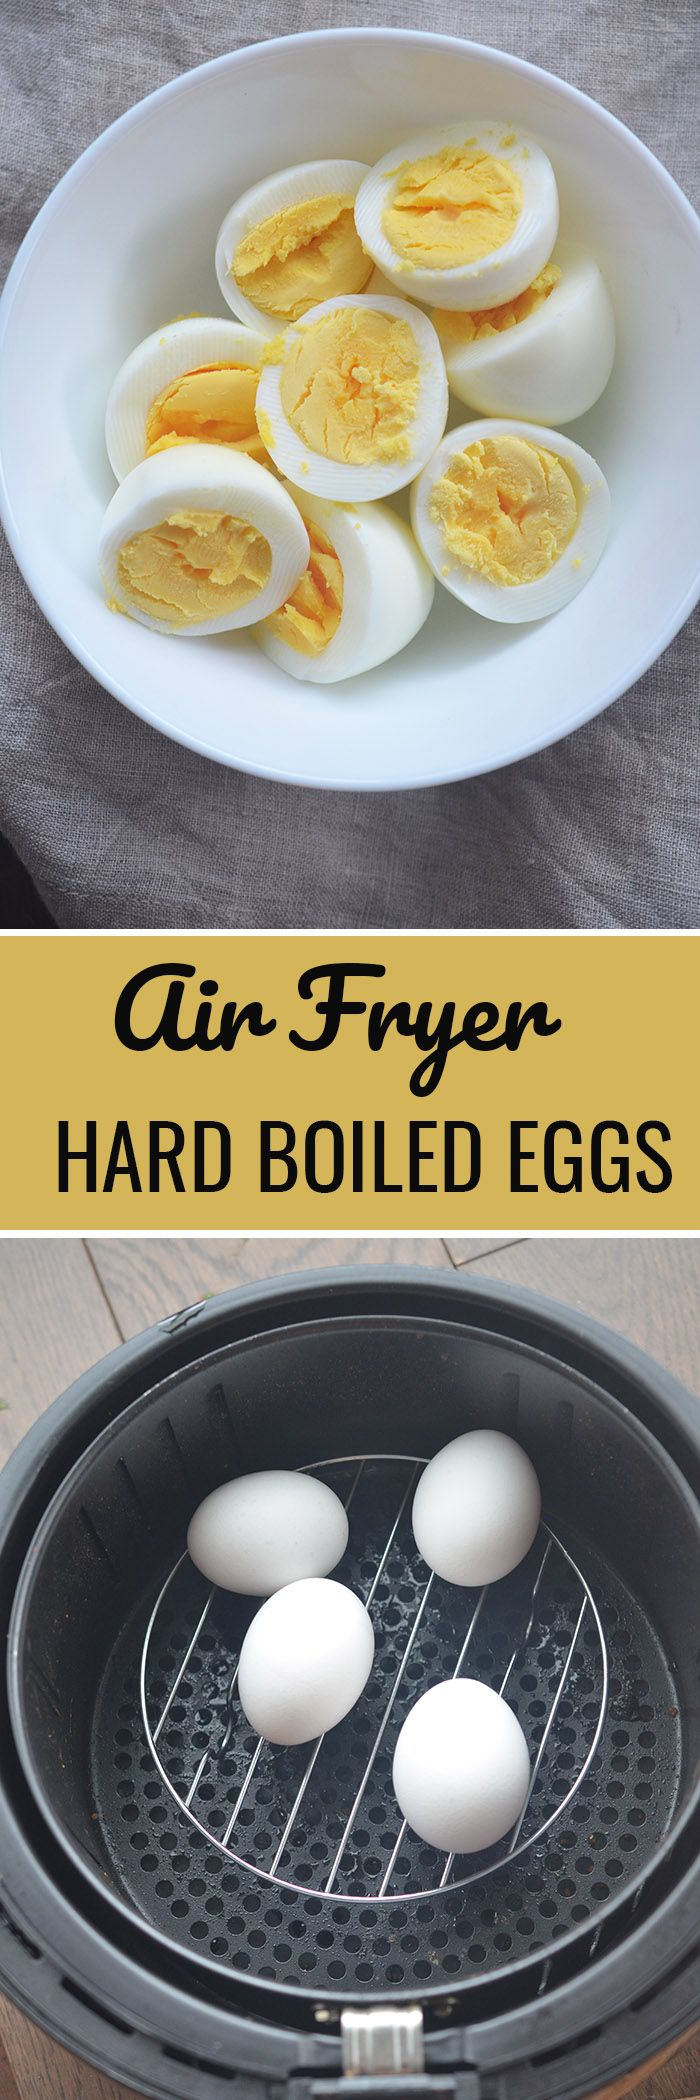 Air Fryer Hard Boiled Eggs Recipe Egg, Air frying and